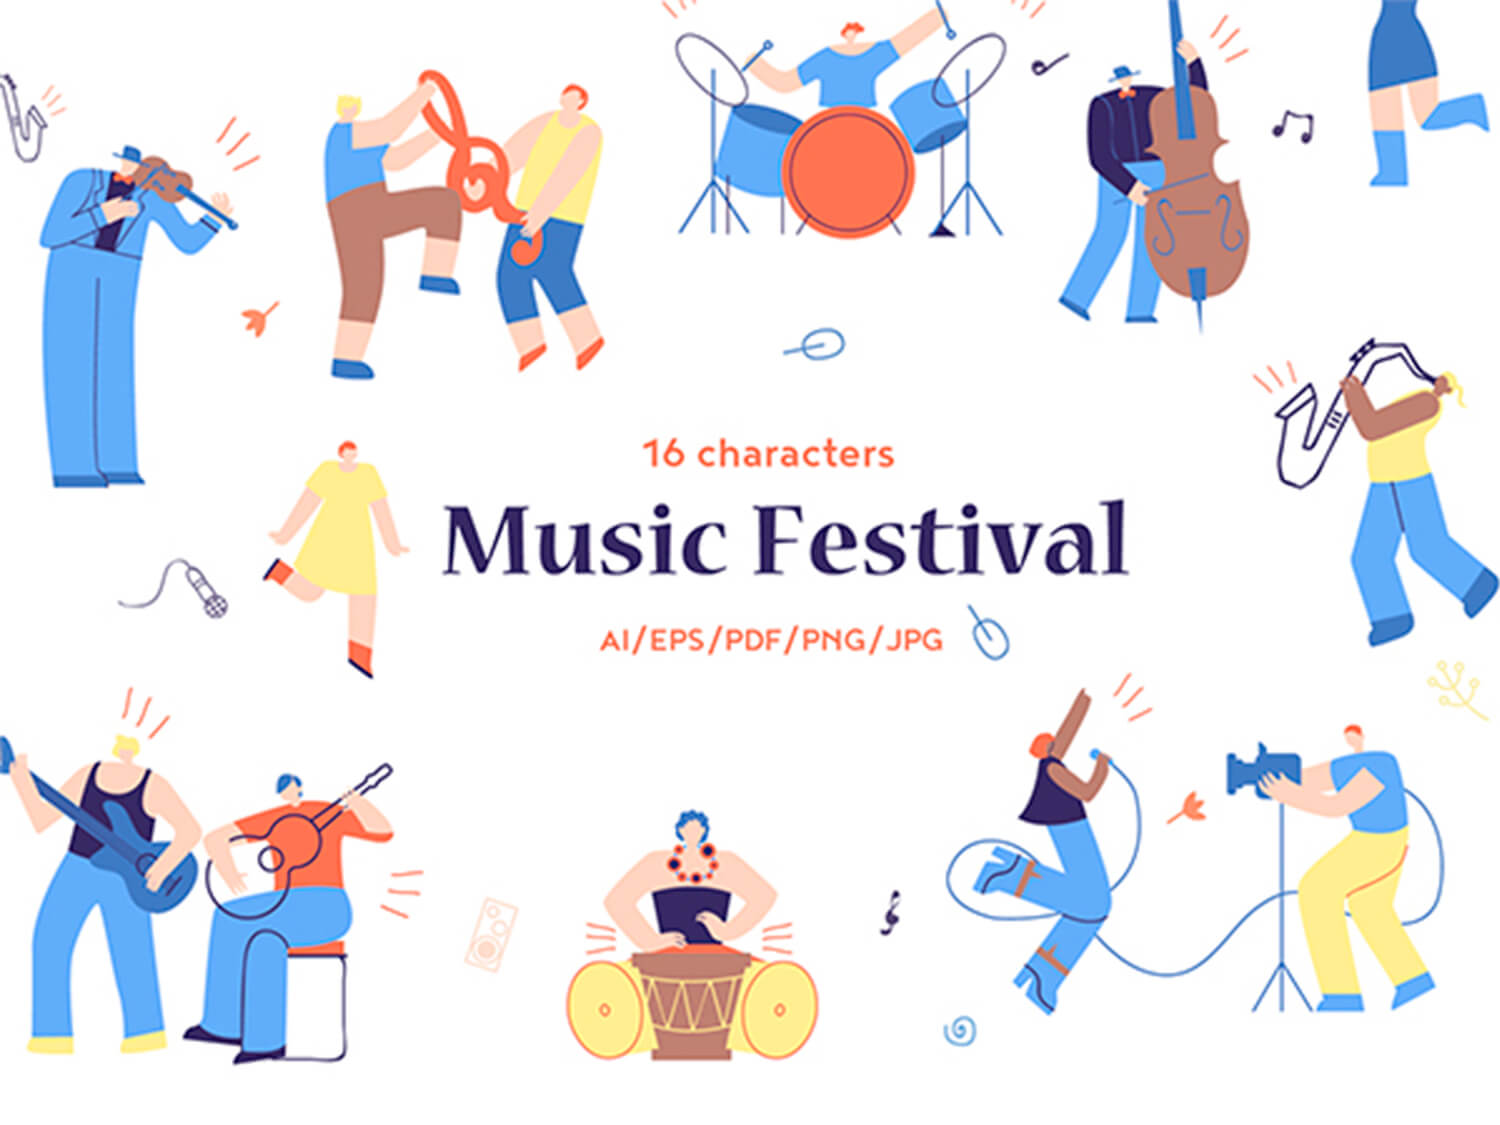 24-in-1 Flaticons Bundle: 16 Musical Fesival Characters